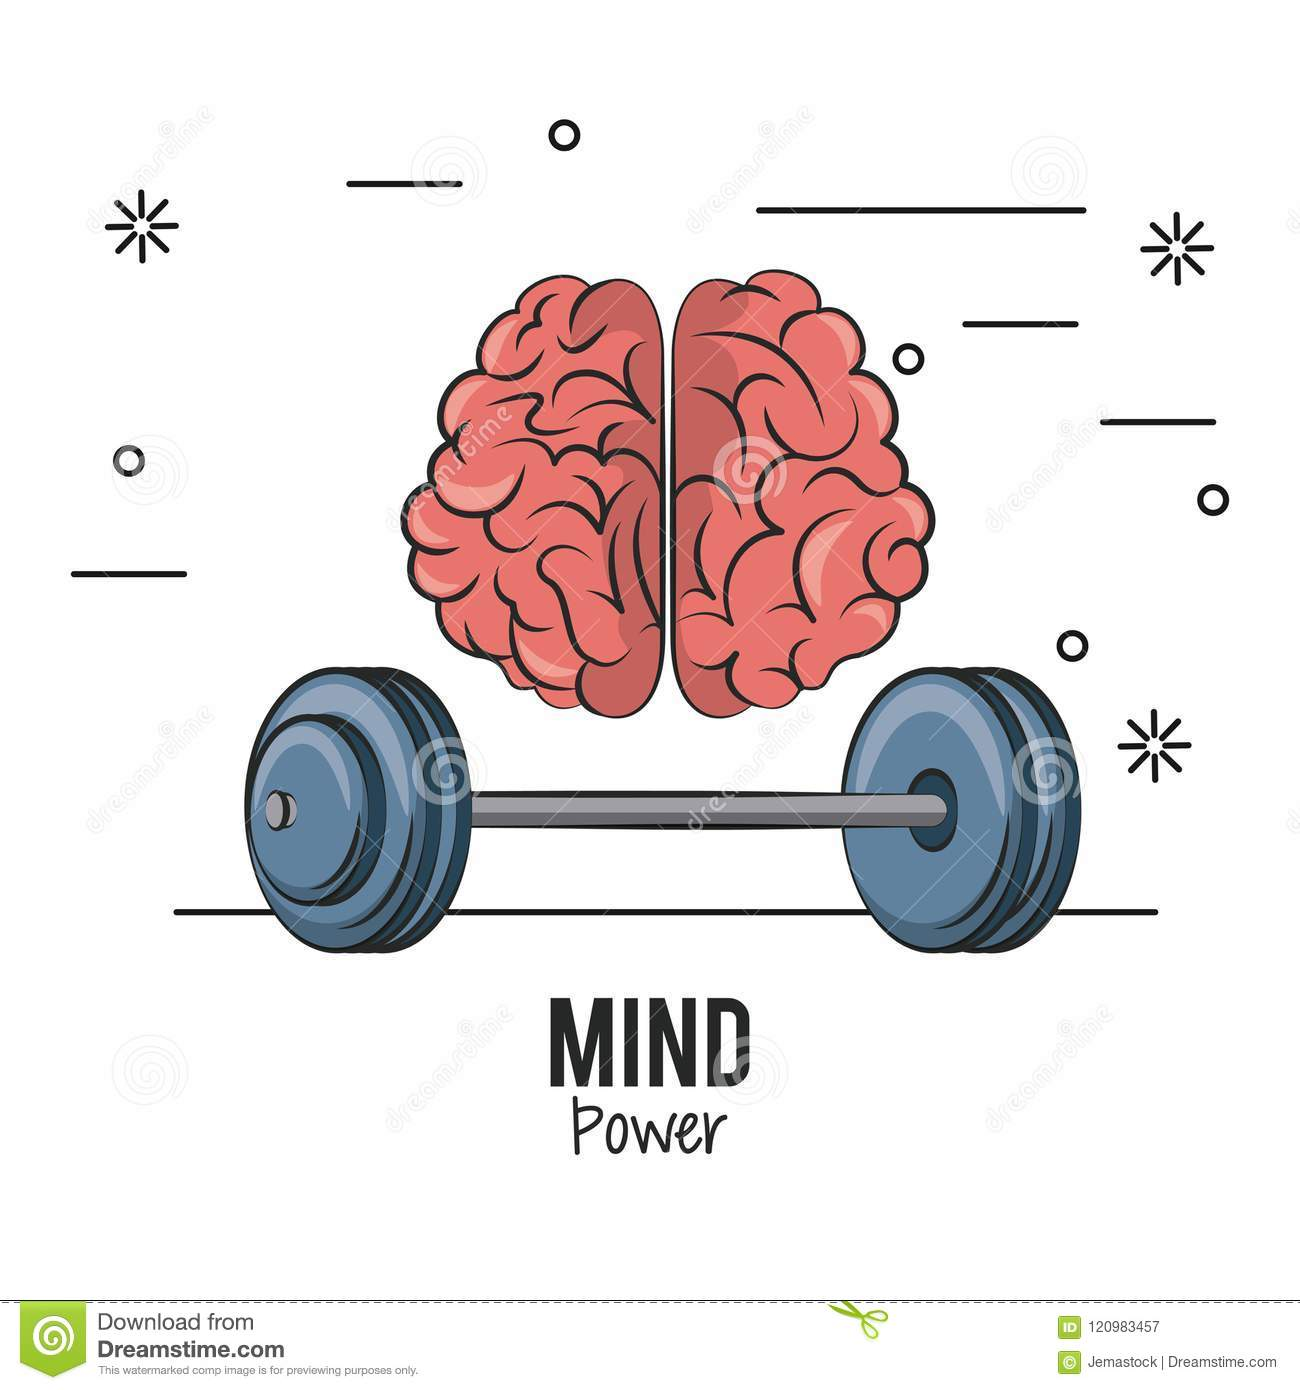 Mind power and brain